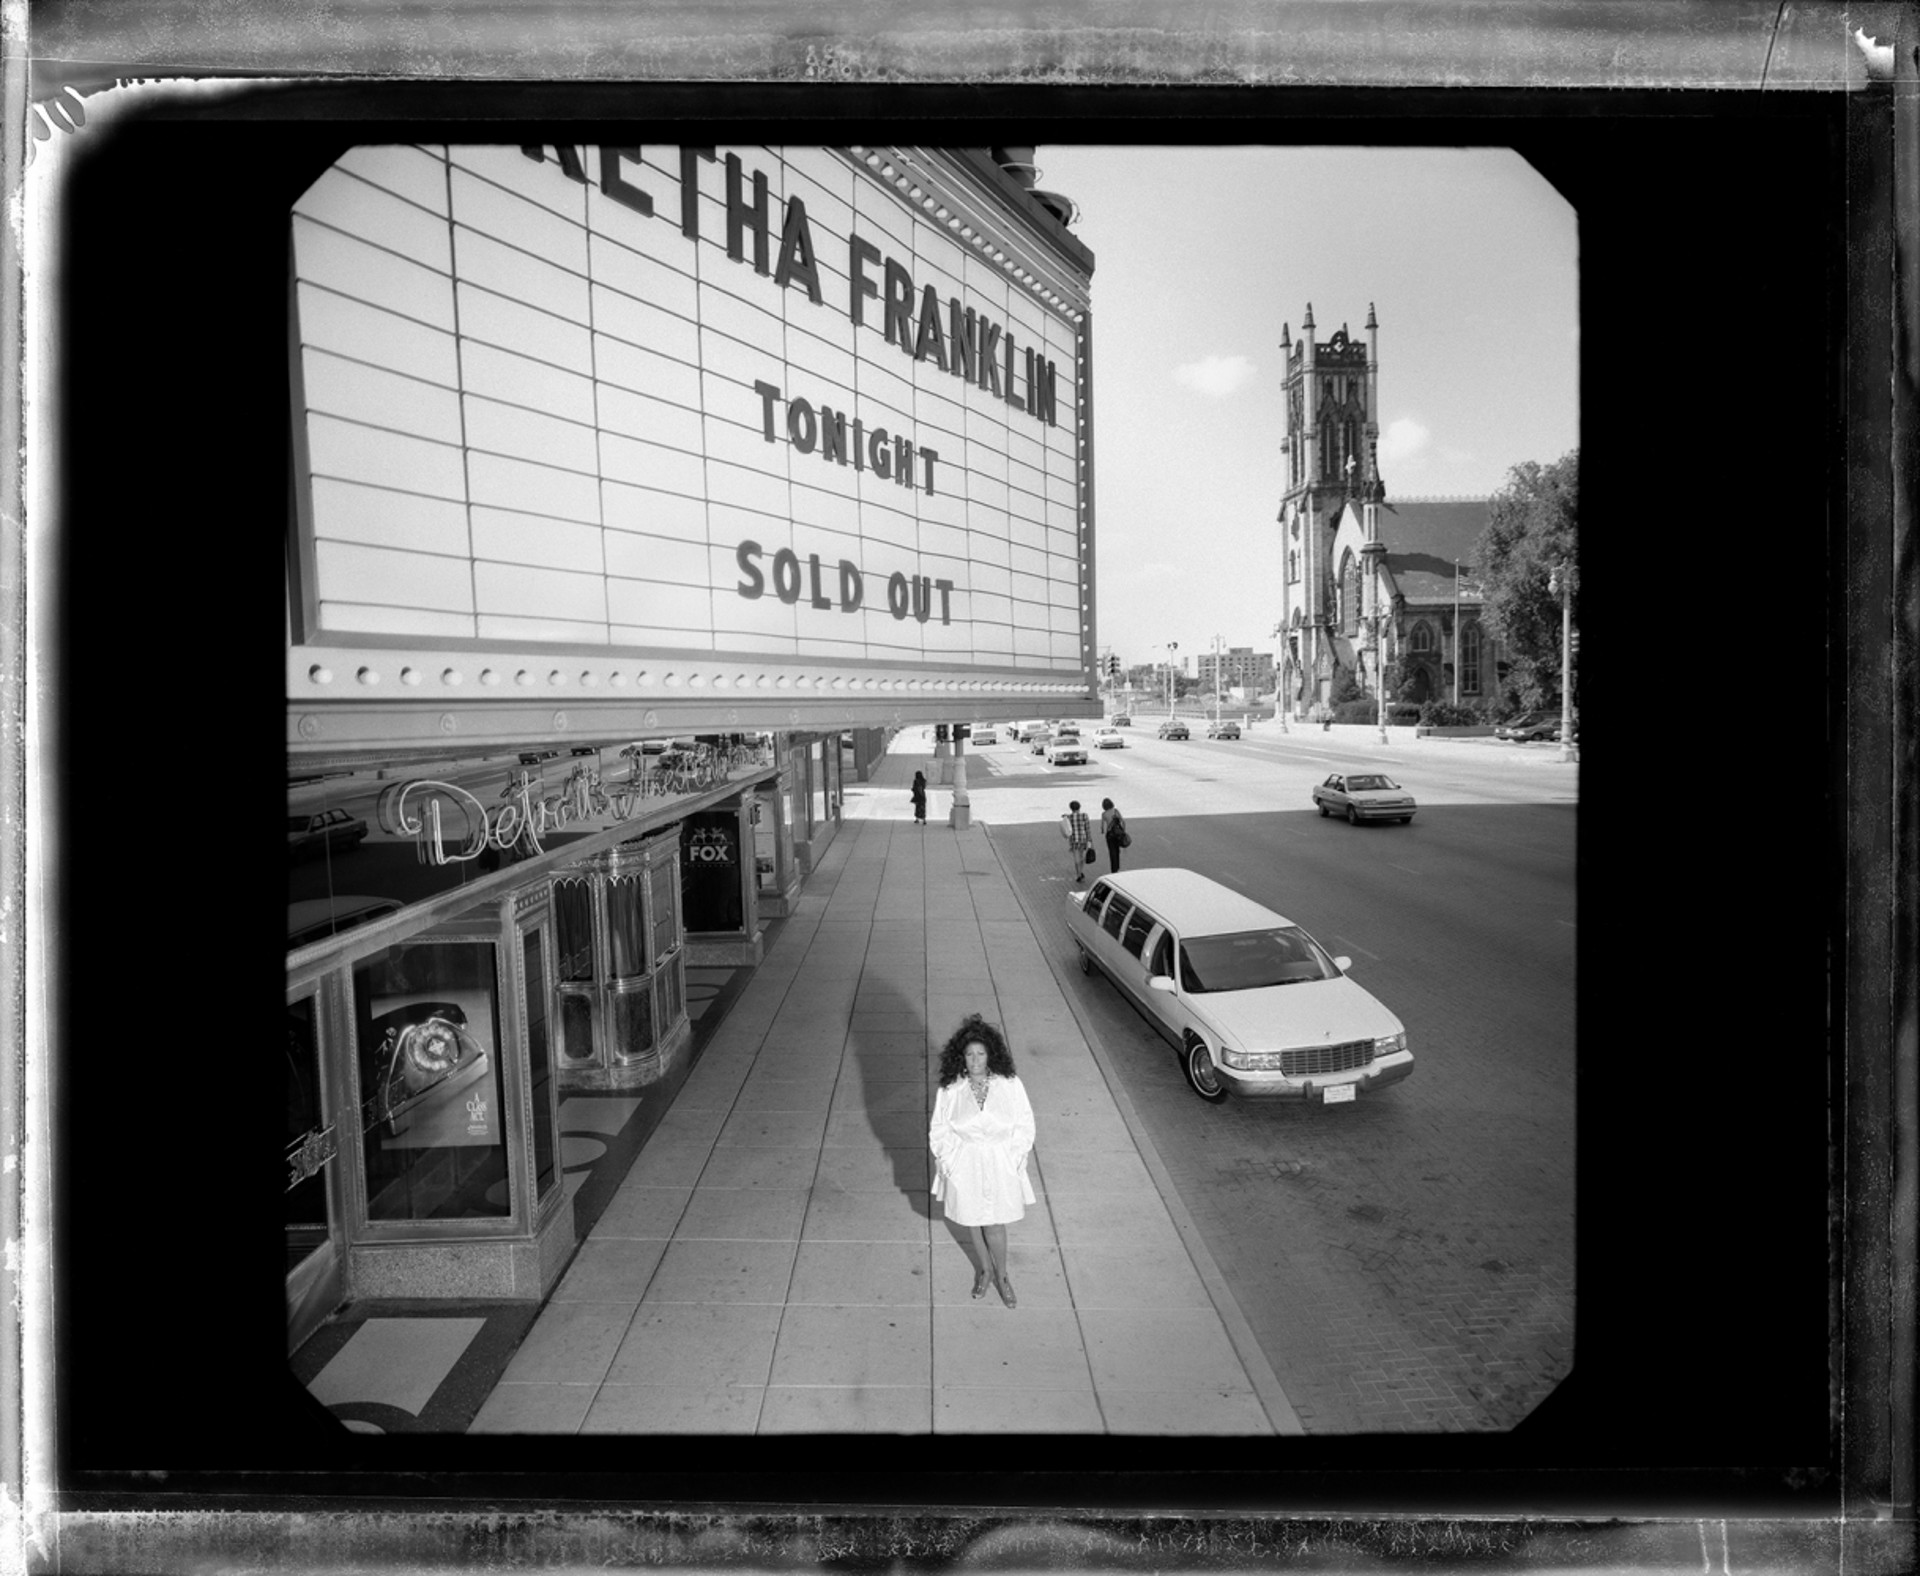 96089 Aretha Franklin Fox Theater Detroit BW by Timothy White